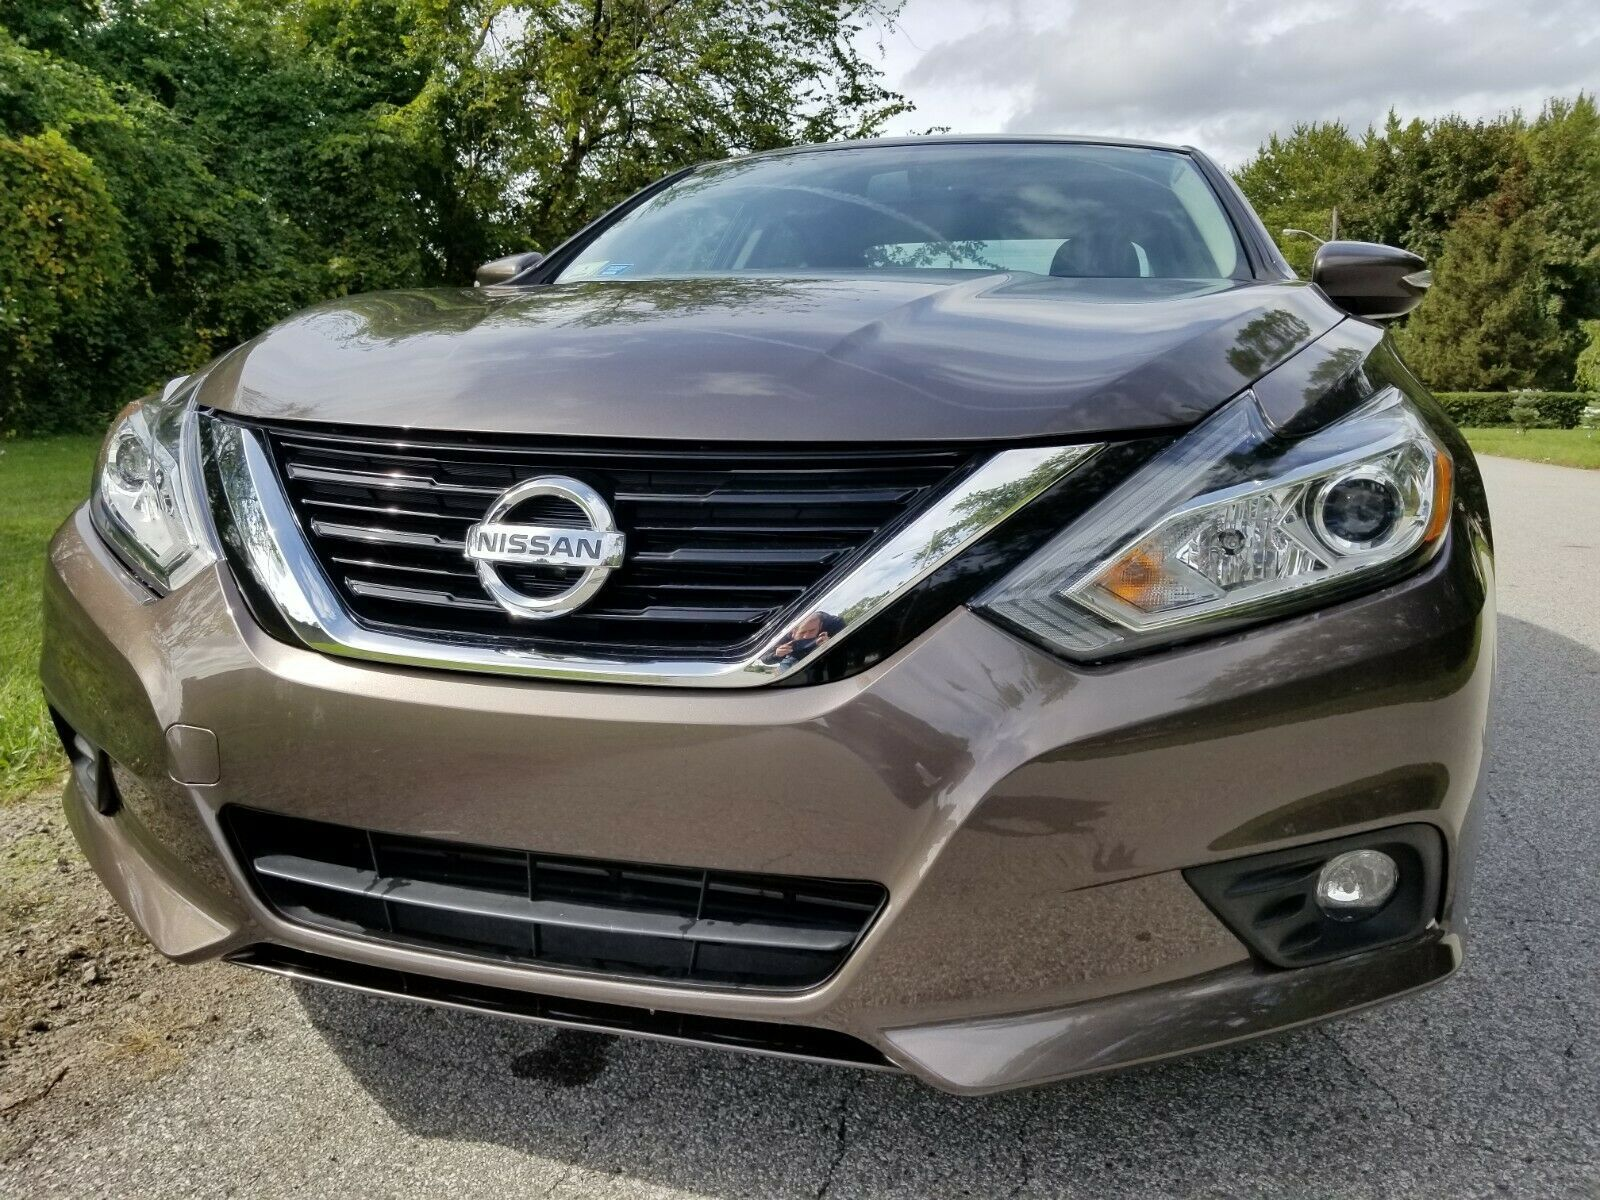 Used 2017 Nissan Altima 2 5 Sl 2017 Nissan Altima 2 5 Sl 2020 Is In Stock And For Sale Mycarboard Com Nissan Altima 2017 Nissan Altima Altima